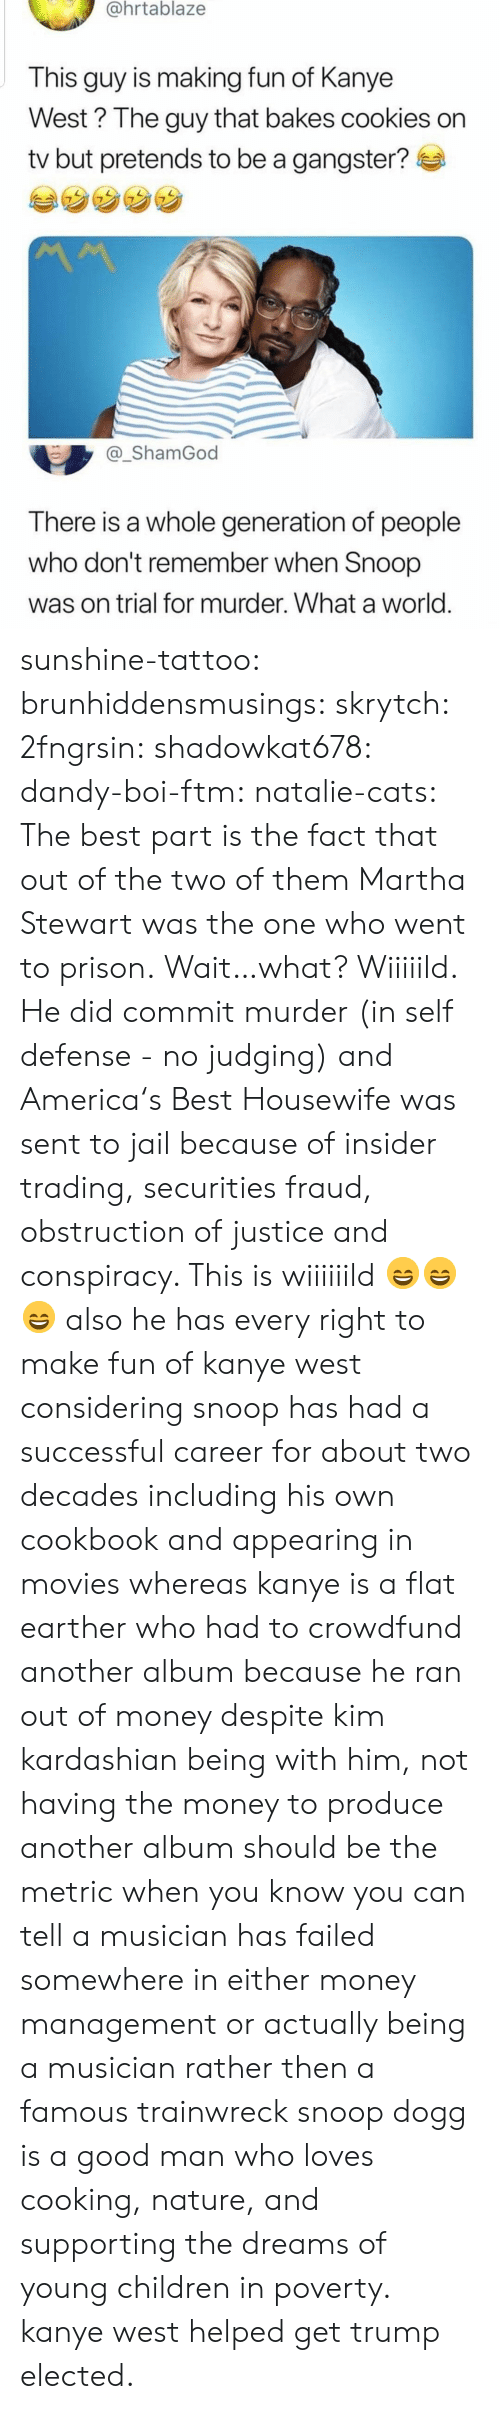 including: @hrtablaze  This guy is making fun of Kanye  West? The guy that bakes cookies on  tv but pretends to be a gangster?  _ShamGod  There is a whole generation of people  who don't remember when Snoop  was on trial for murder. What a world sunshine-tattoo: brunhiddensmusings:  skrytch:  2fngrsin:  shadowkat678:  dandy-boi-ftm:   natalie-cats:   The best part is the fact that out of the two of them Martha Stewart was the one who went to prison.   Wait…what?   Wiiiiild. He did commit murder (in self defense - no judging) and America's Best Housewife was sent to jail because of insider trading, securities fraud, obstruction of justice and conspiracy. This is wiiiiiild 😄😄😄    also he has every right to make fun of kanye west considering snoop has had a successful career for about two decades including his own cookbook and appearing in movies whereas kanye is a flat earther who had to crowdfund another album because he ran out of money despite kim kardashian being with him, not having the money to produce another album should be the metric when you know you can tell a musician has failed somewhere in either money management or actually being a musician rather then a famous trainwreck   snoop dogg is a good man who loves cooking, nature, and supporting the dreams of young children in poverty. kanye west helped get trump elected.